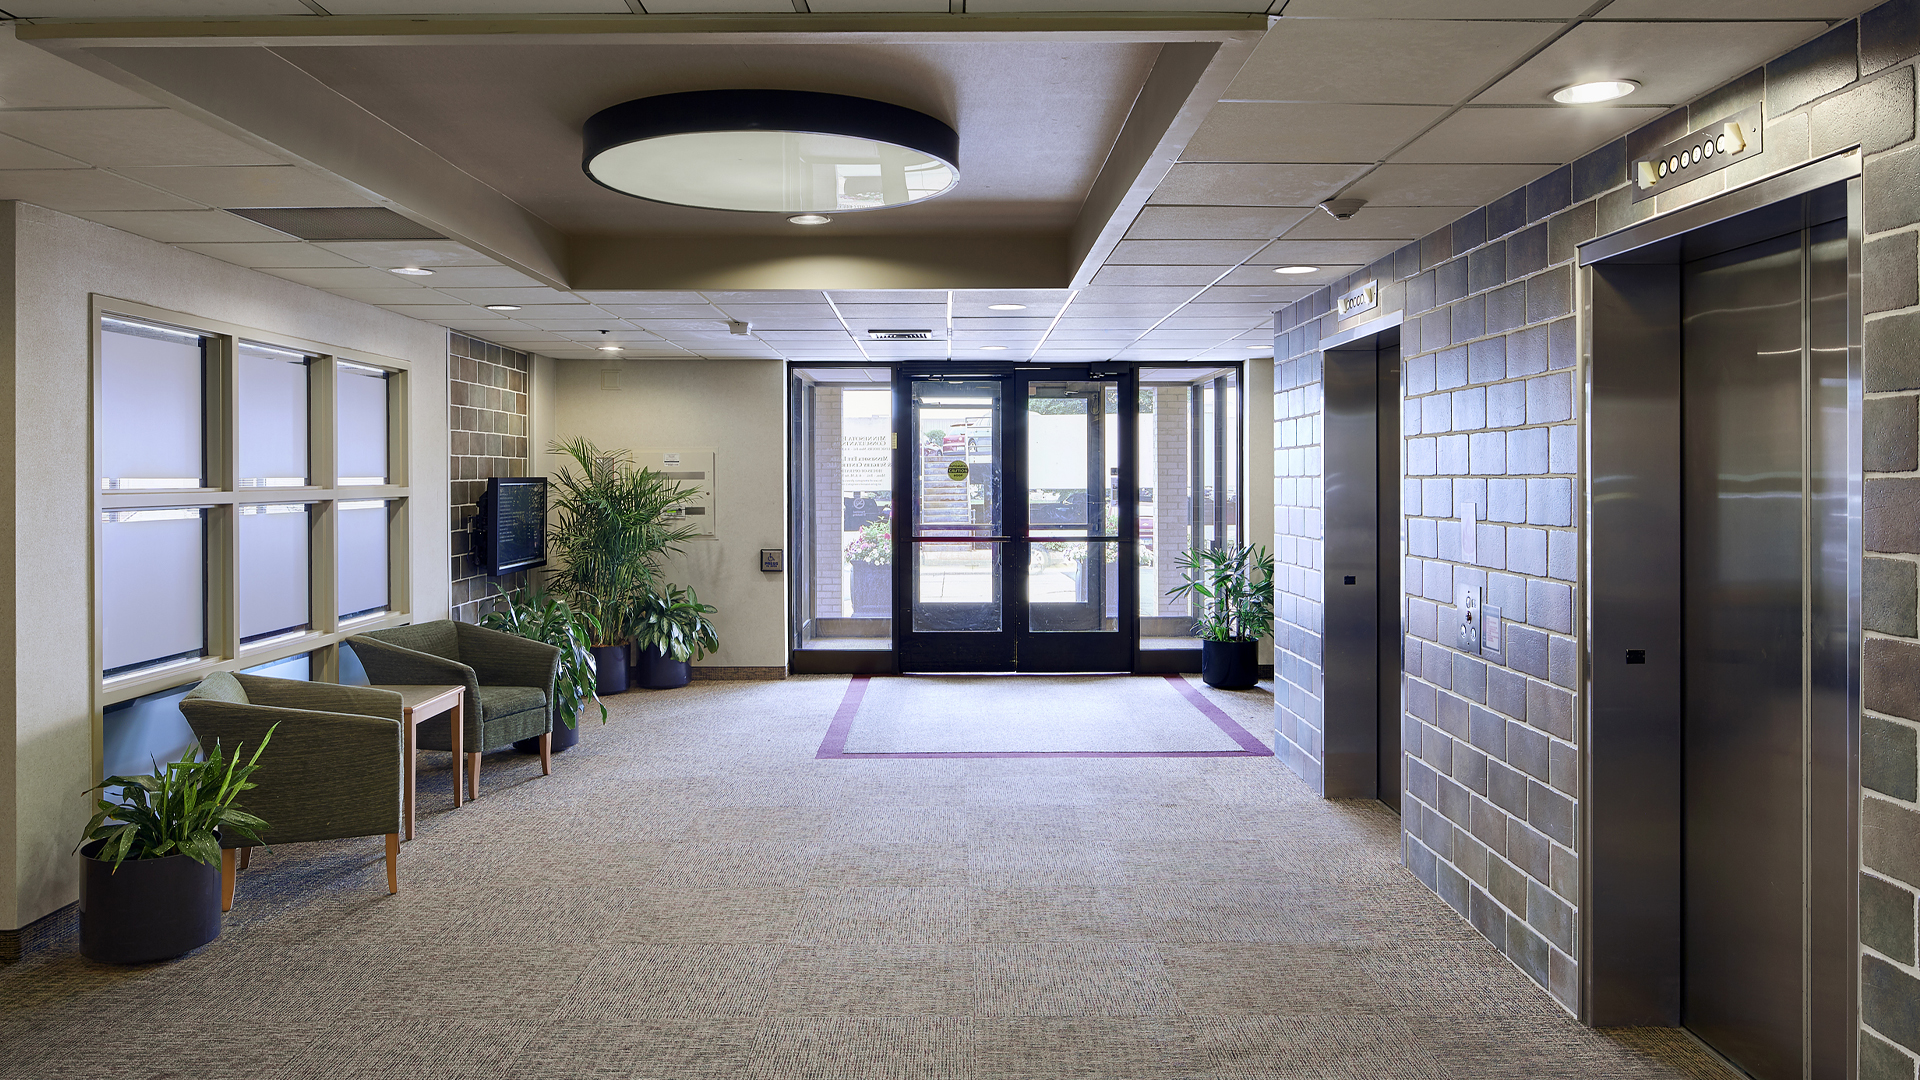 Dupont Center Office Building Bloomington MN interior entrance lobby